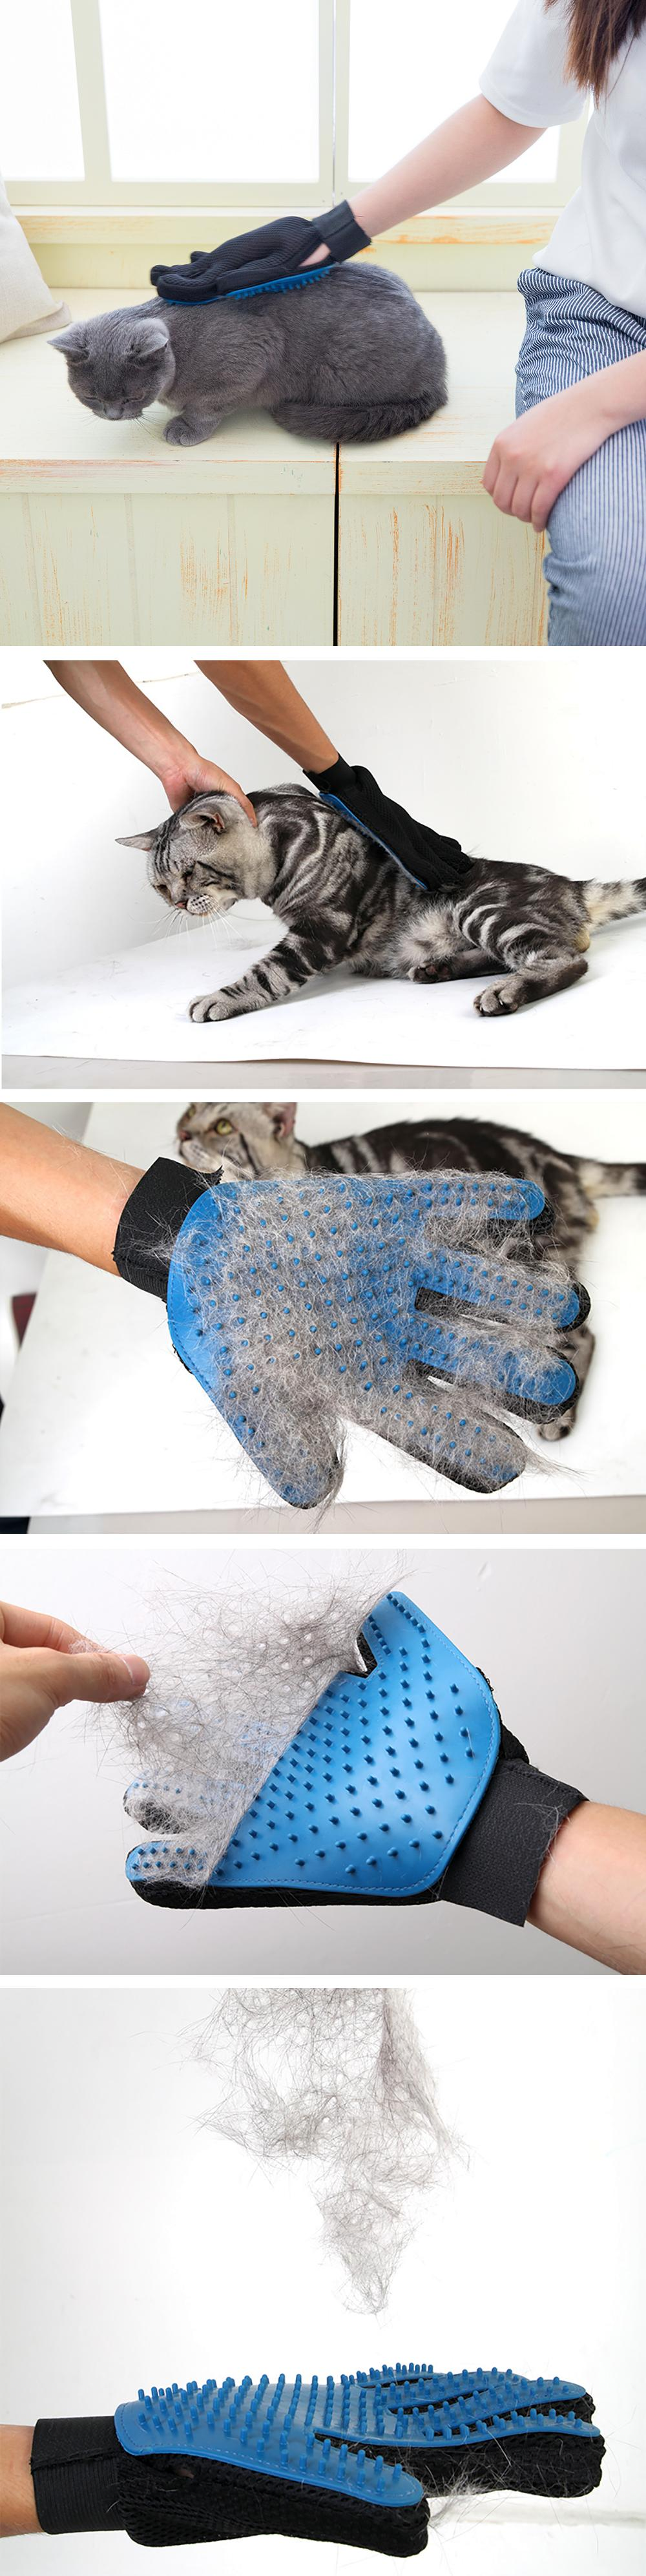 Gentle Deshedding Glove For Pet Grooming - Details